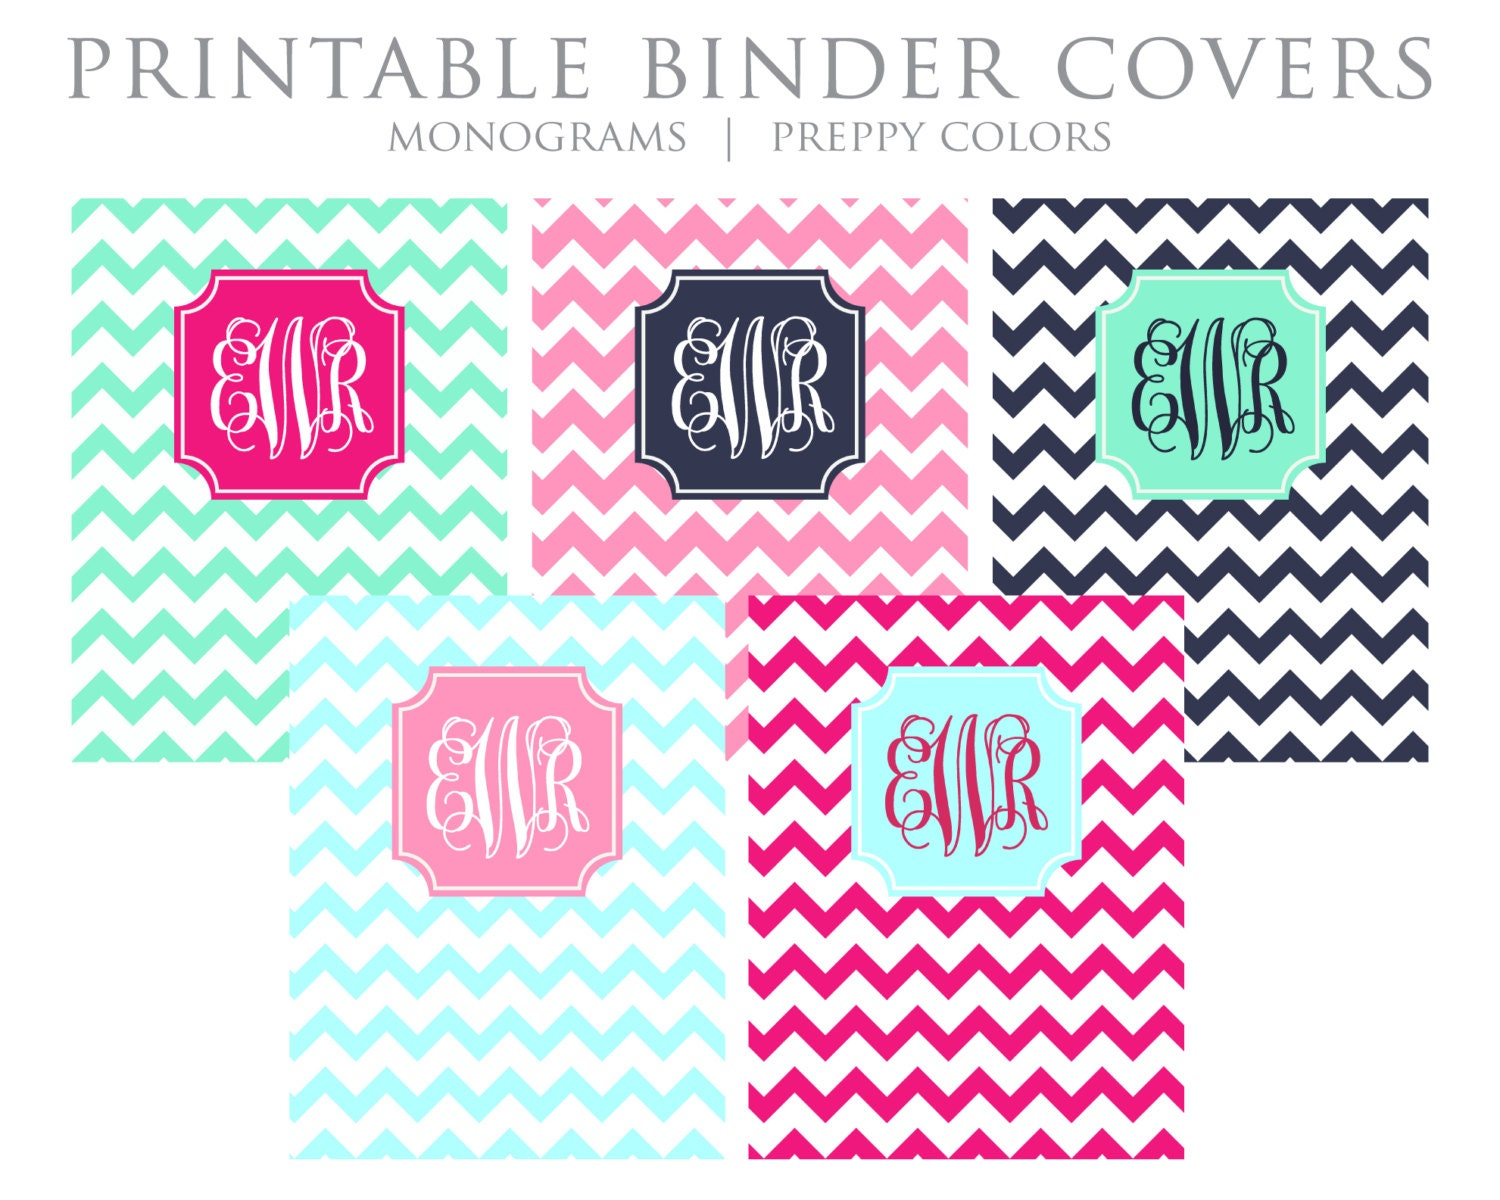 This is an image of Zany Printable Monogram Binder Cover